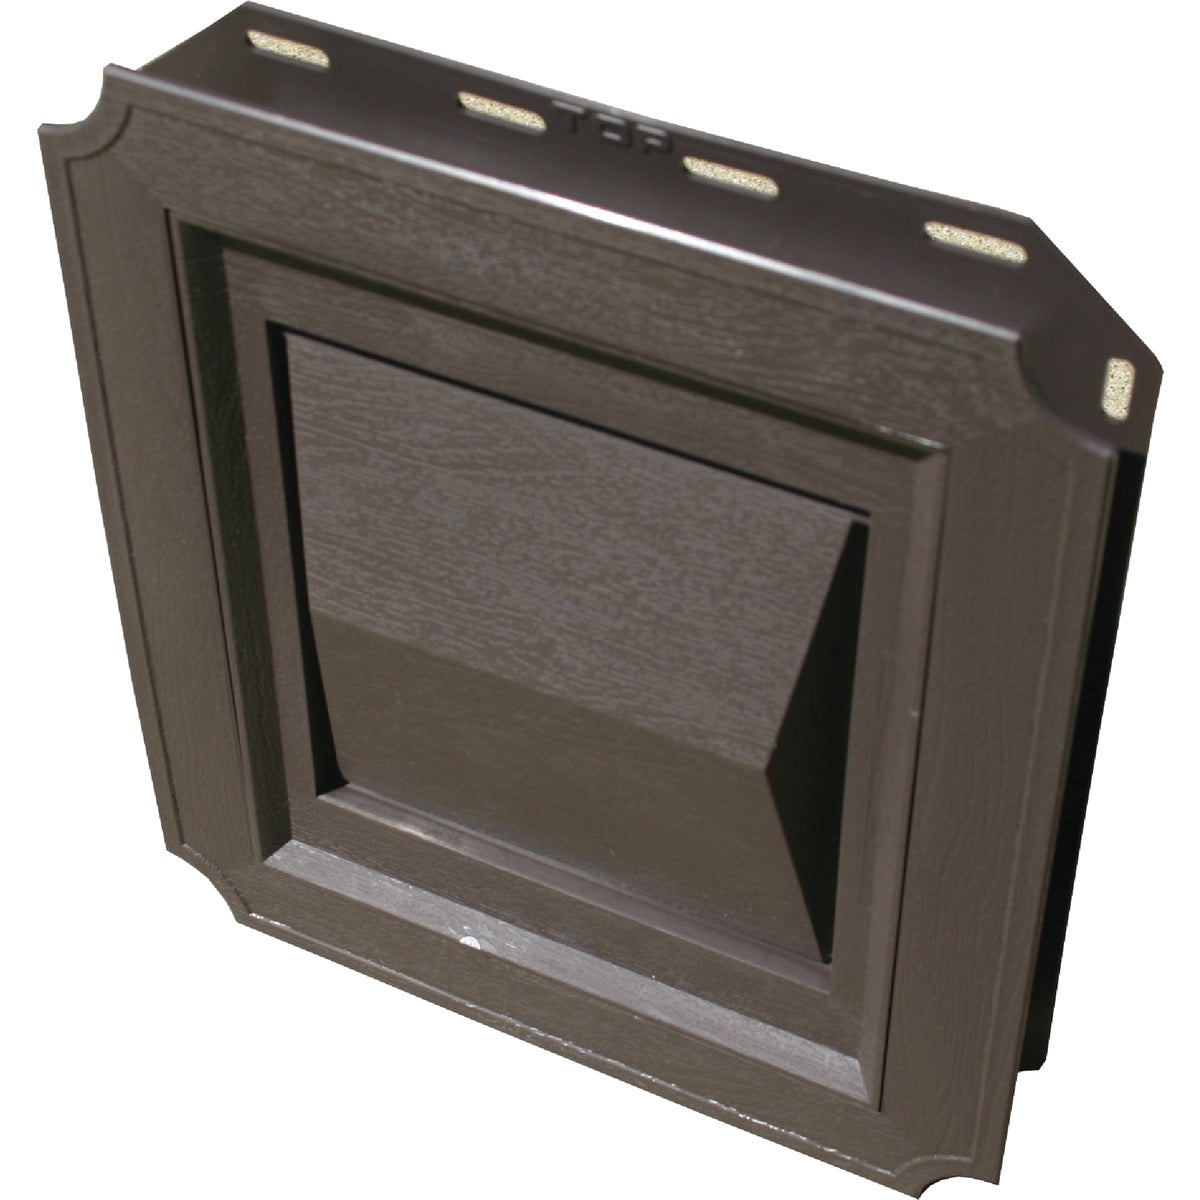 BROWN J-BLOCK VENT HOOD - 011717 by Builders Best